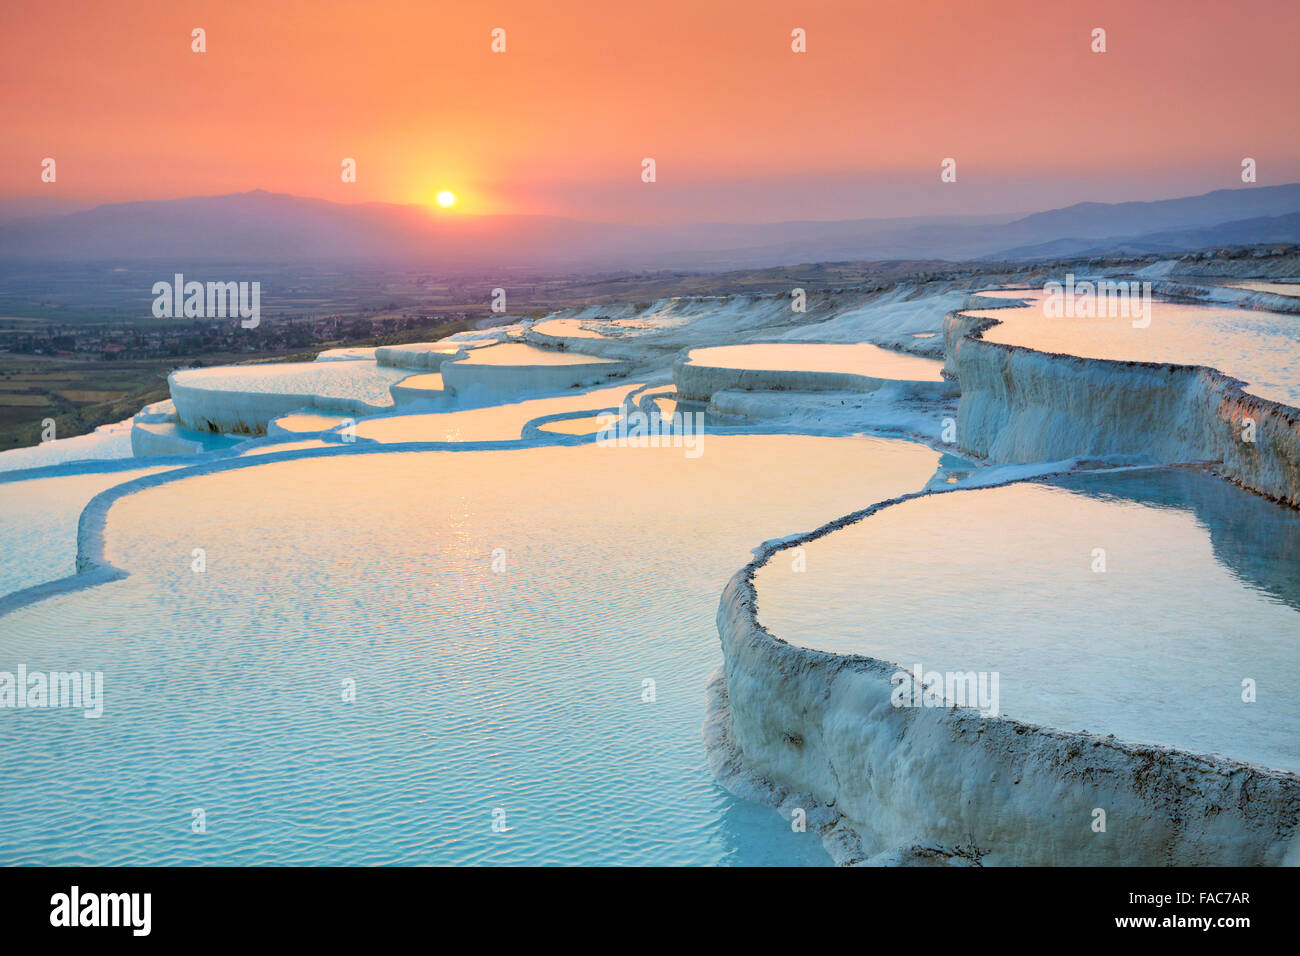 Landscapes at Pamukkale sunset -  terraces of carbonate minerals left by the flowing water, Pamukkale, Turkey - Stock Image